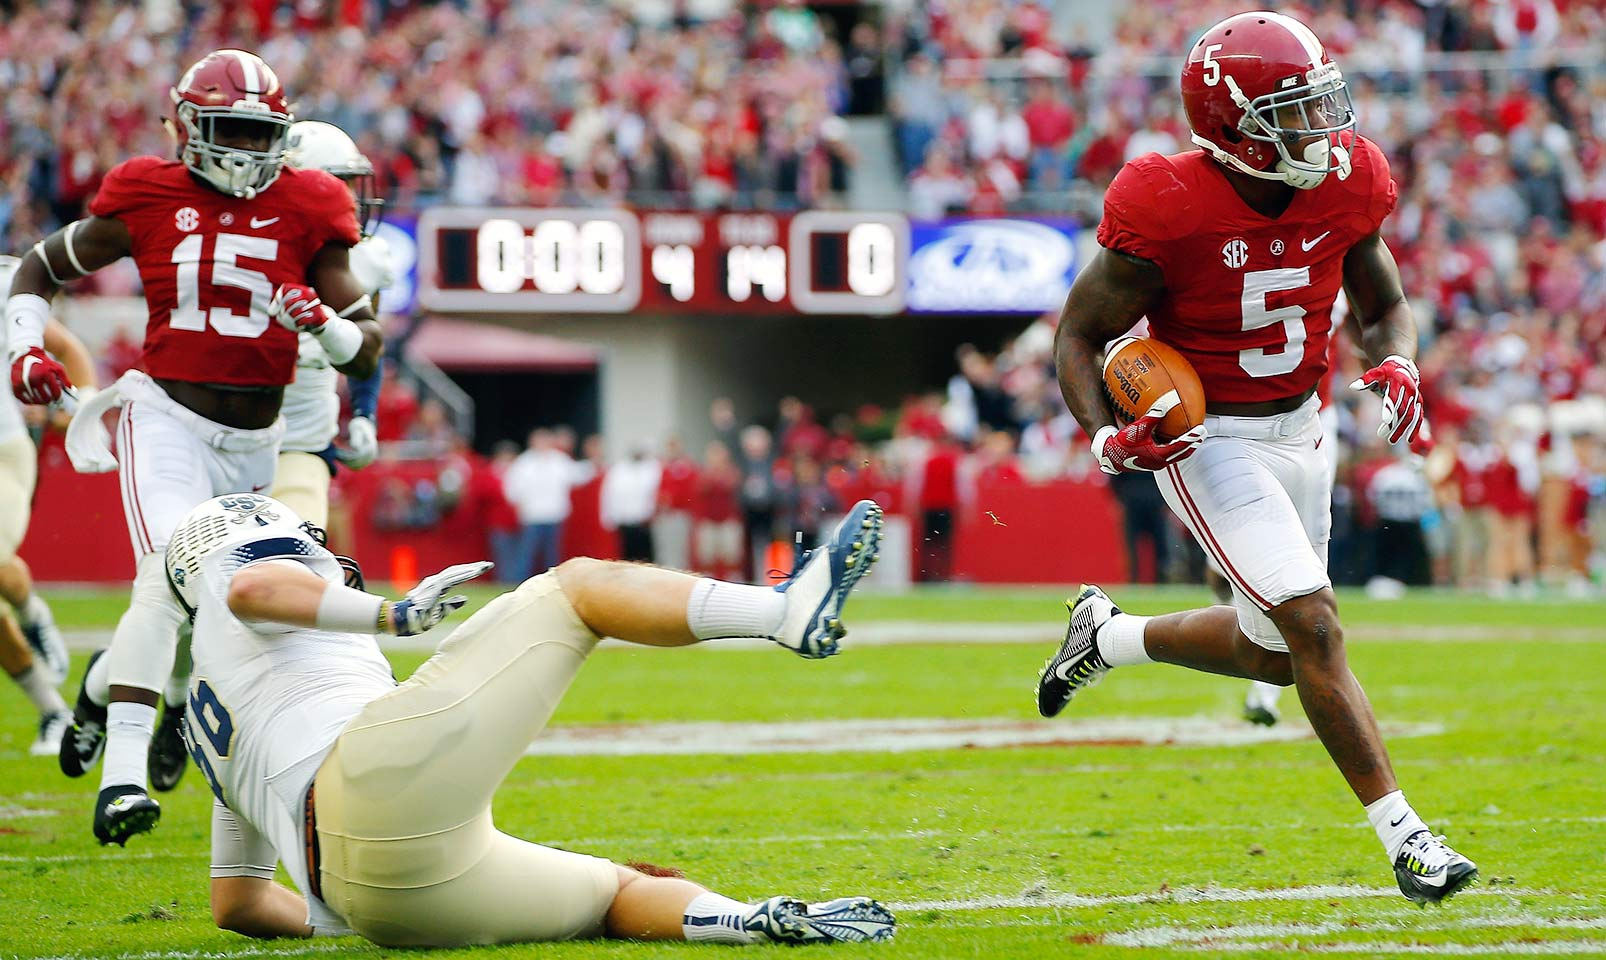 Alabama 56, Charleston Southern 6: Cyrus Jones returned two punts for touchdowns as the Crimson Tide raced to a 49–0 lead by halftime.